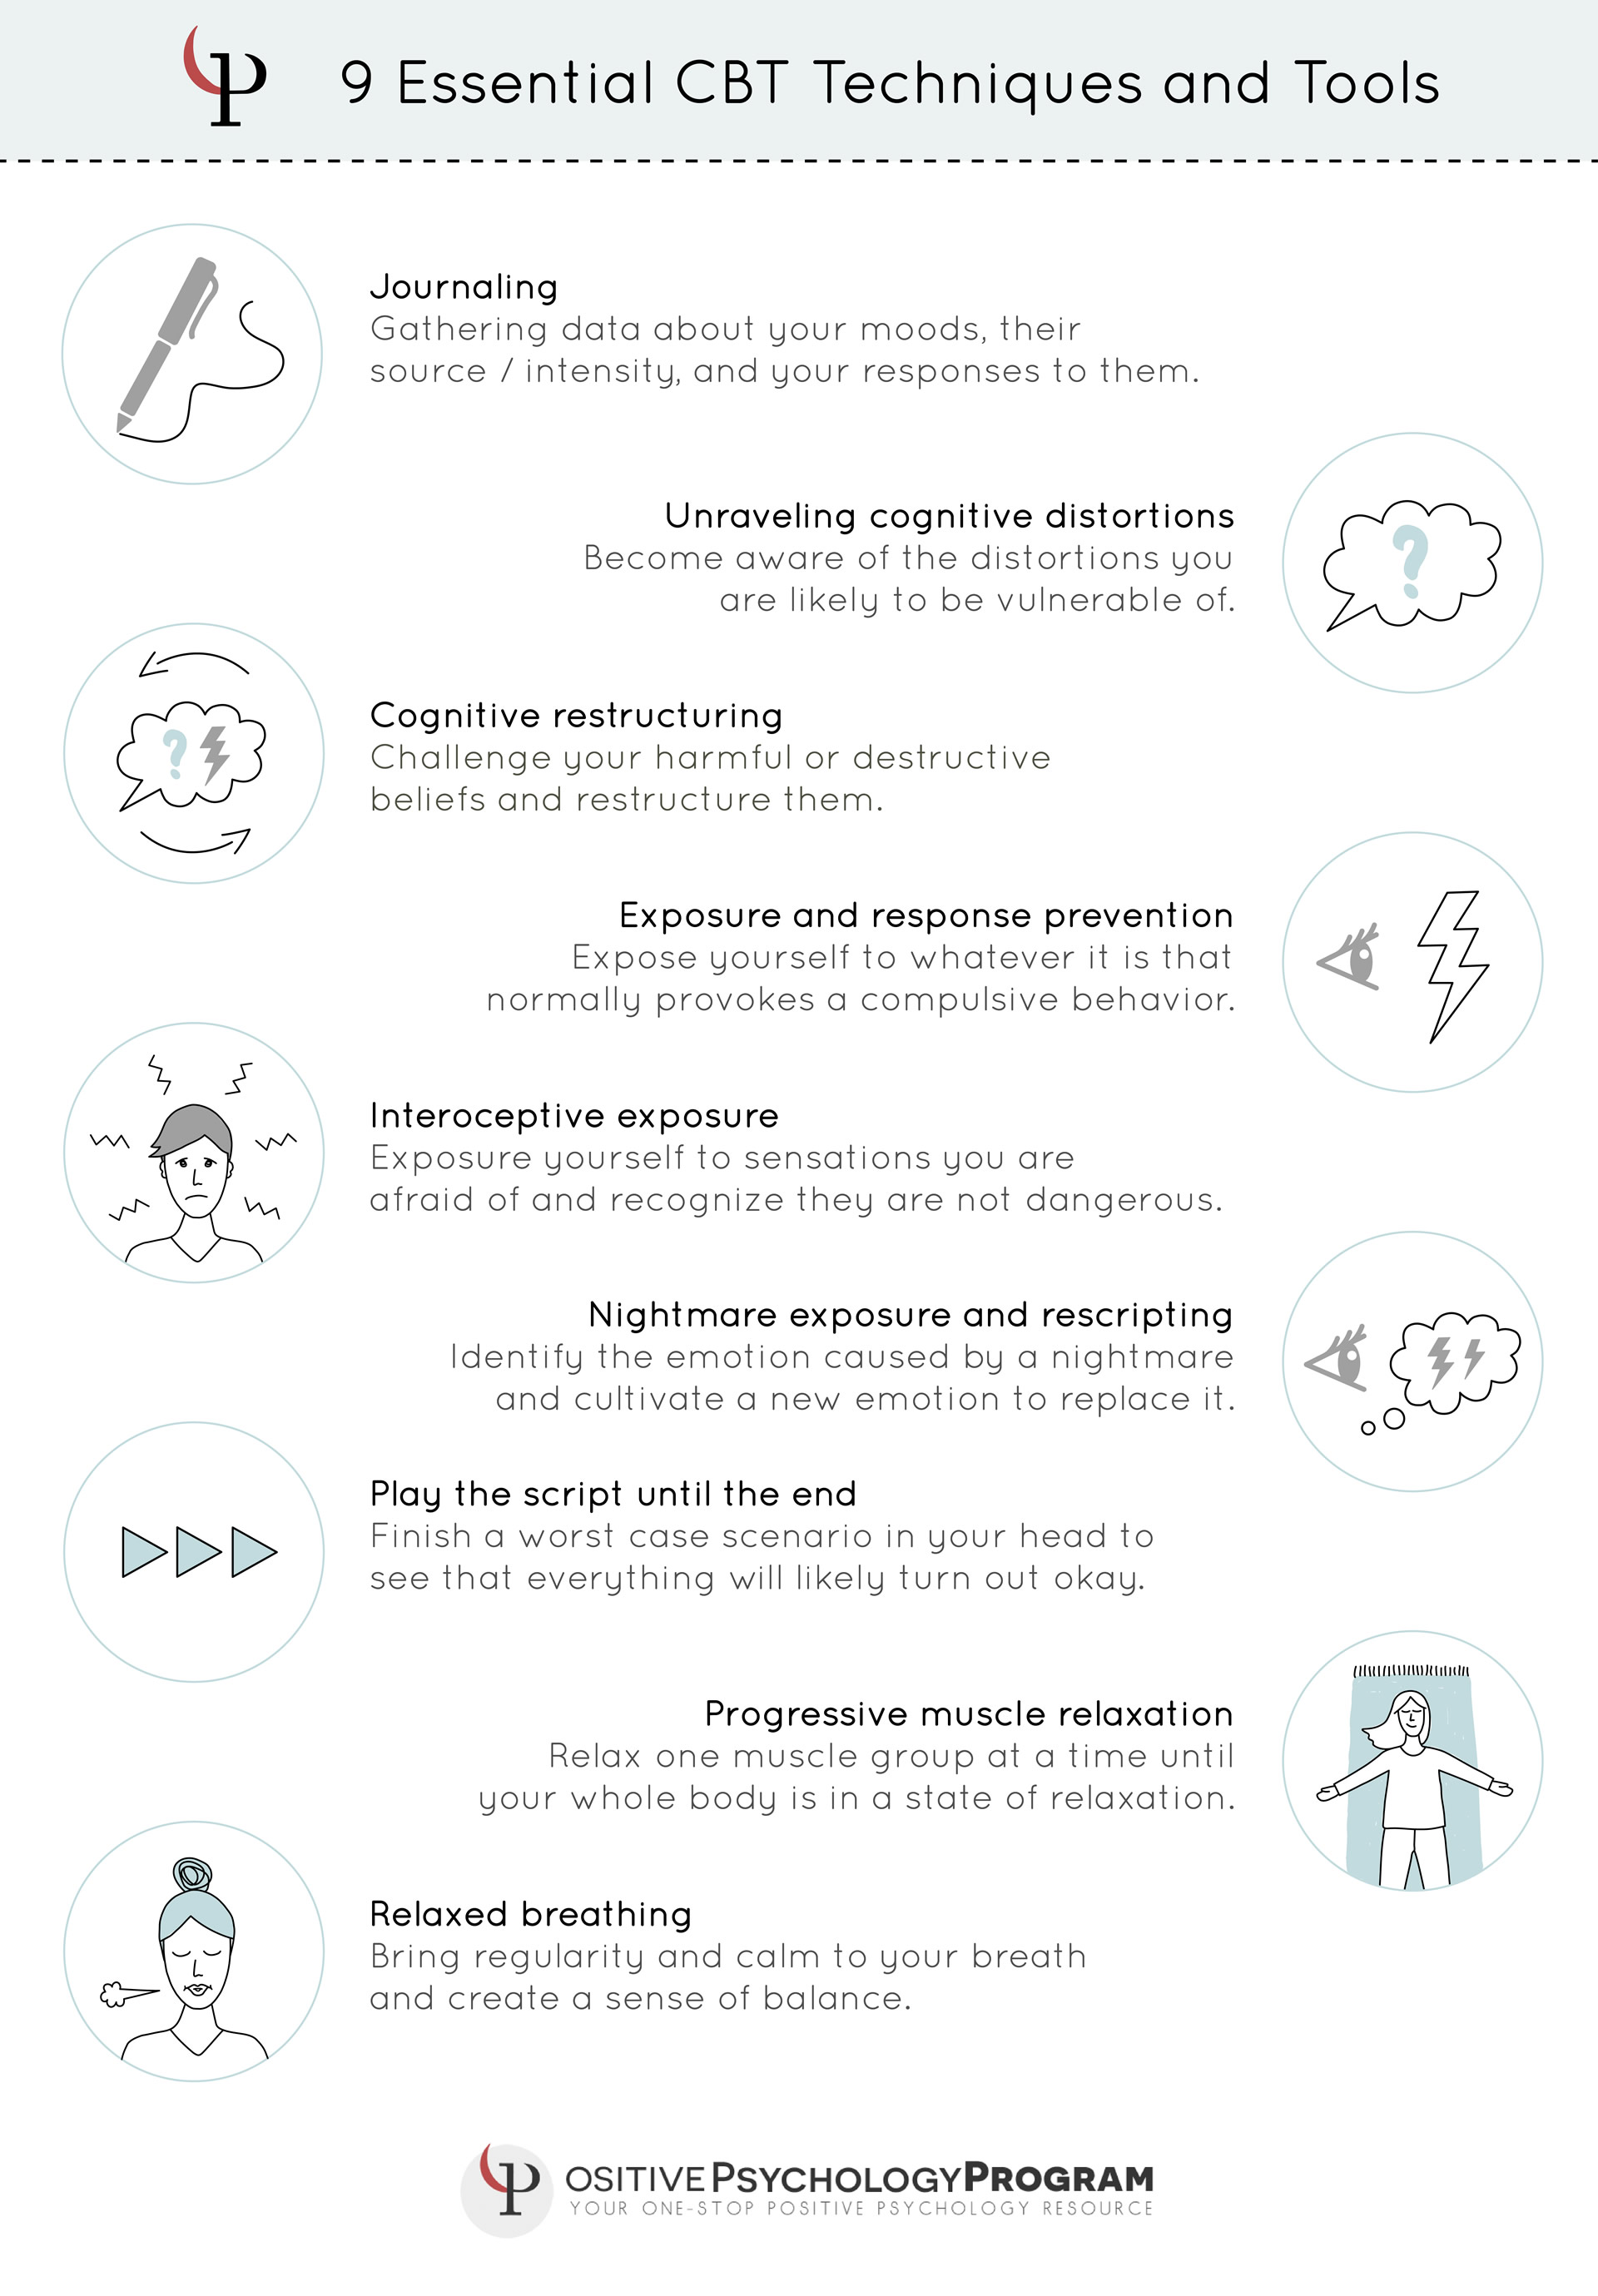 Worksheets Cbt Therapy Worksheets 25 cbt techniques and worksheets for cognitive behavioral therapy 9 essential tools infographic